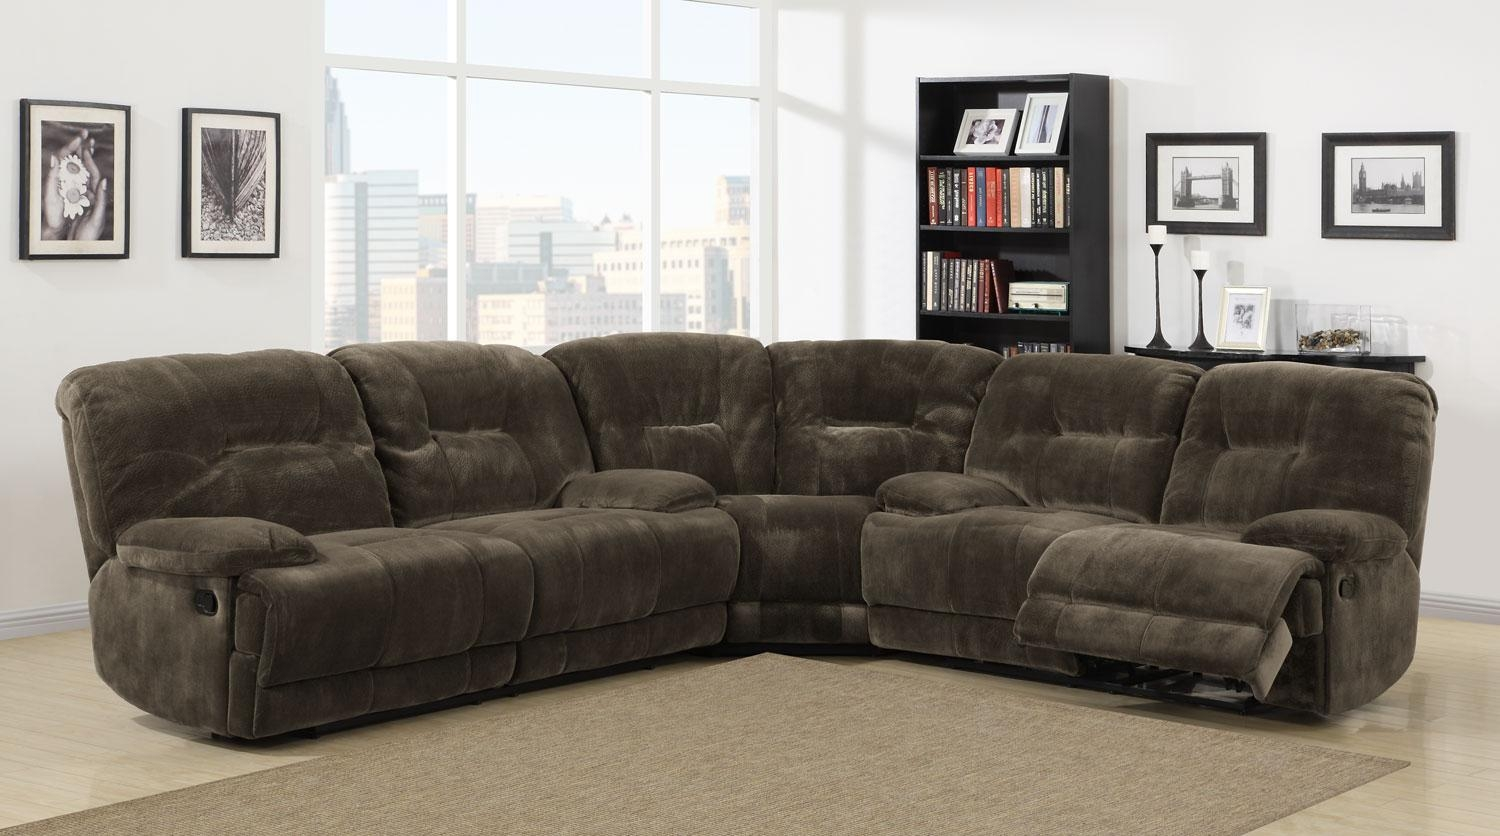 Sofas Center : Best Rated Power Recliner Sectional Sofa Reclining Pertaining To Curved Sectional Sofas With Recliner (Image 14 of 20)